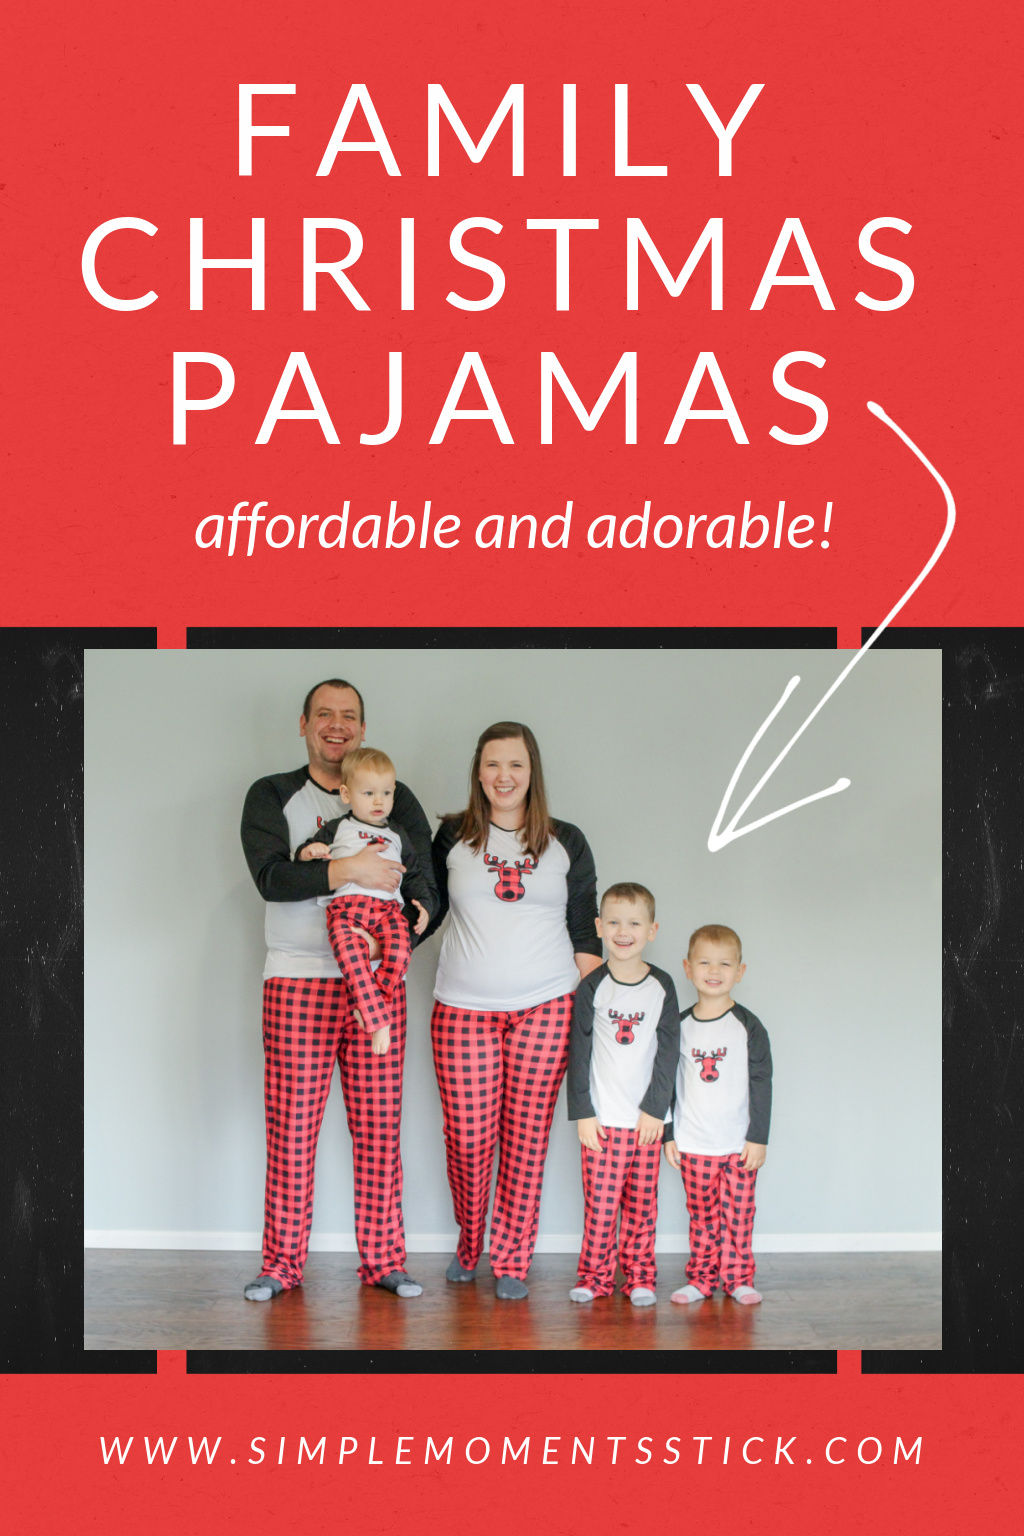 matching family pajamas. family for Christmas. family Christmas ideas